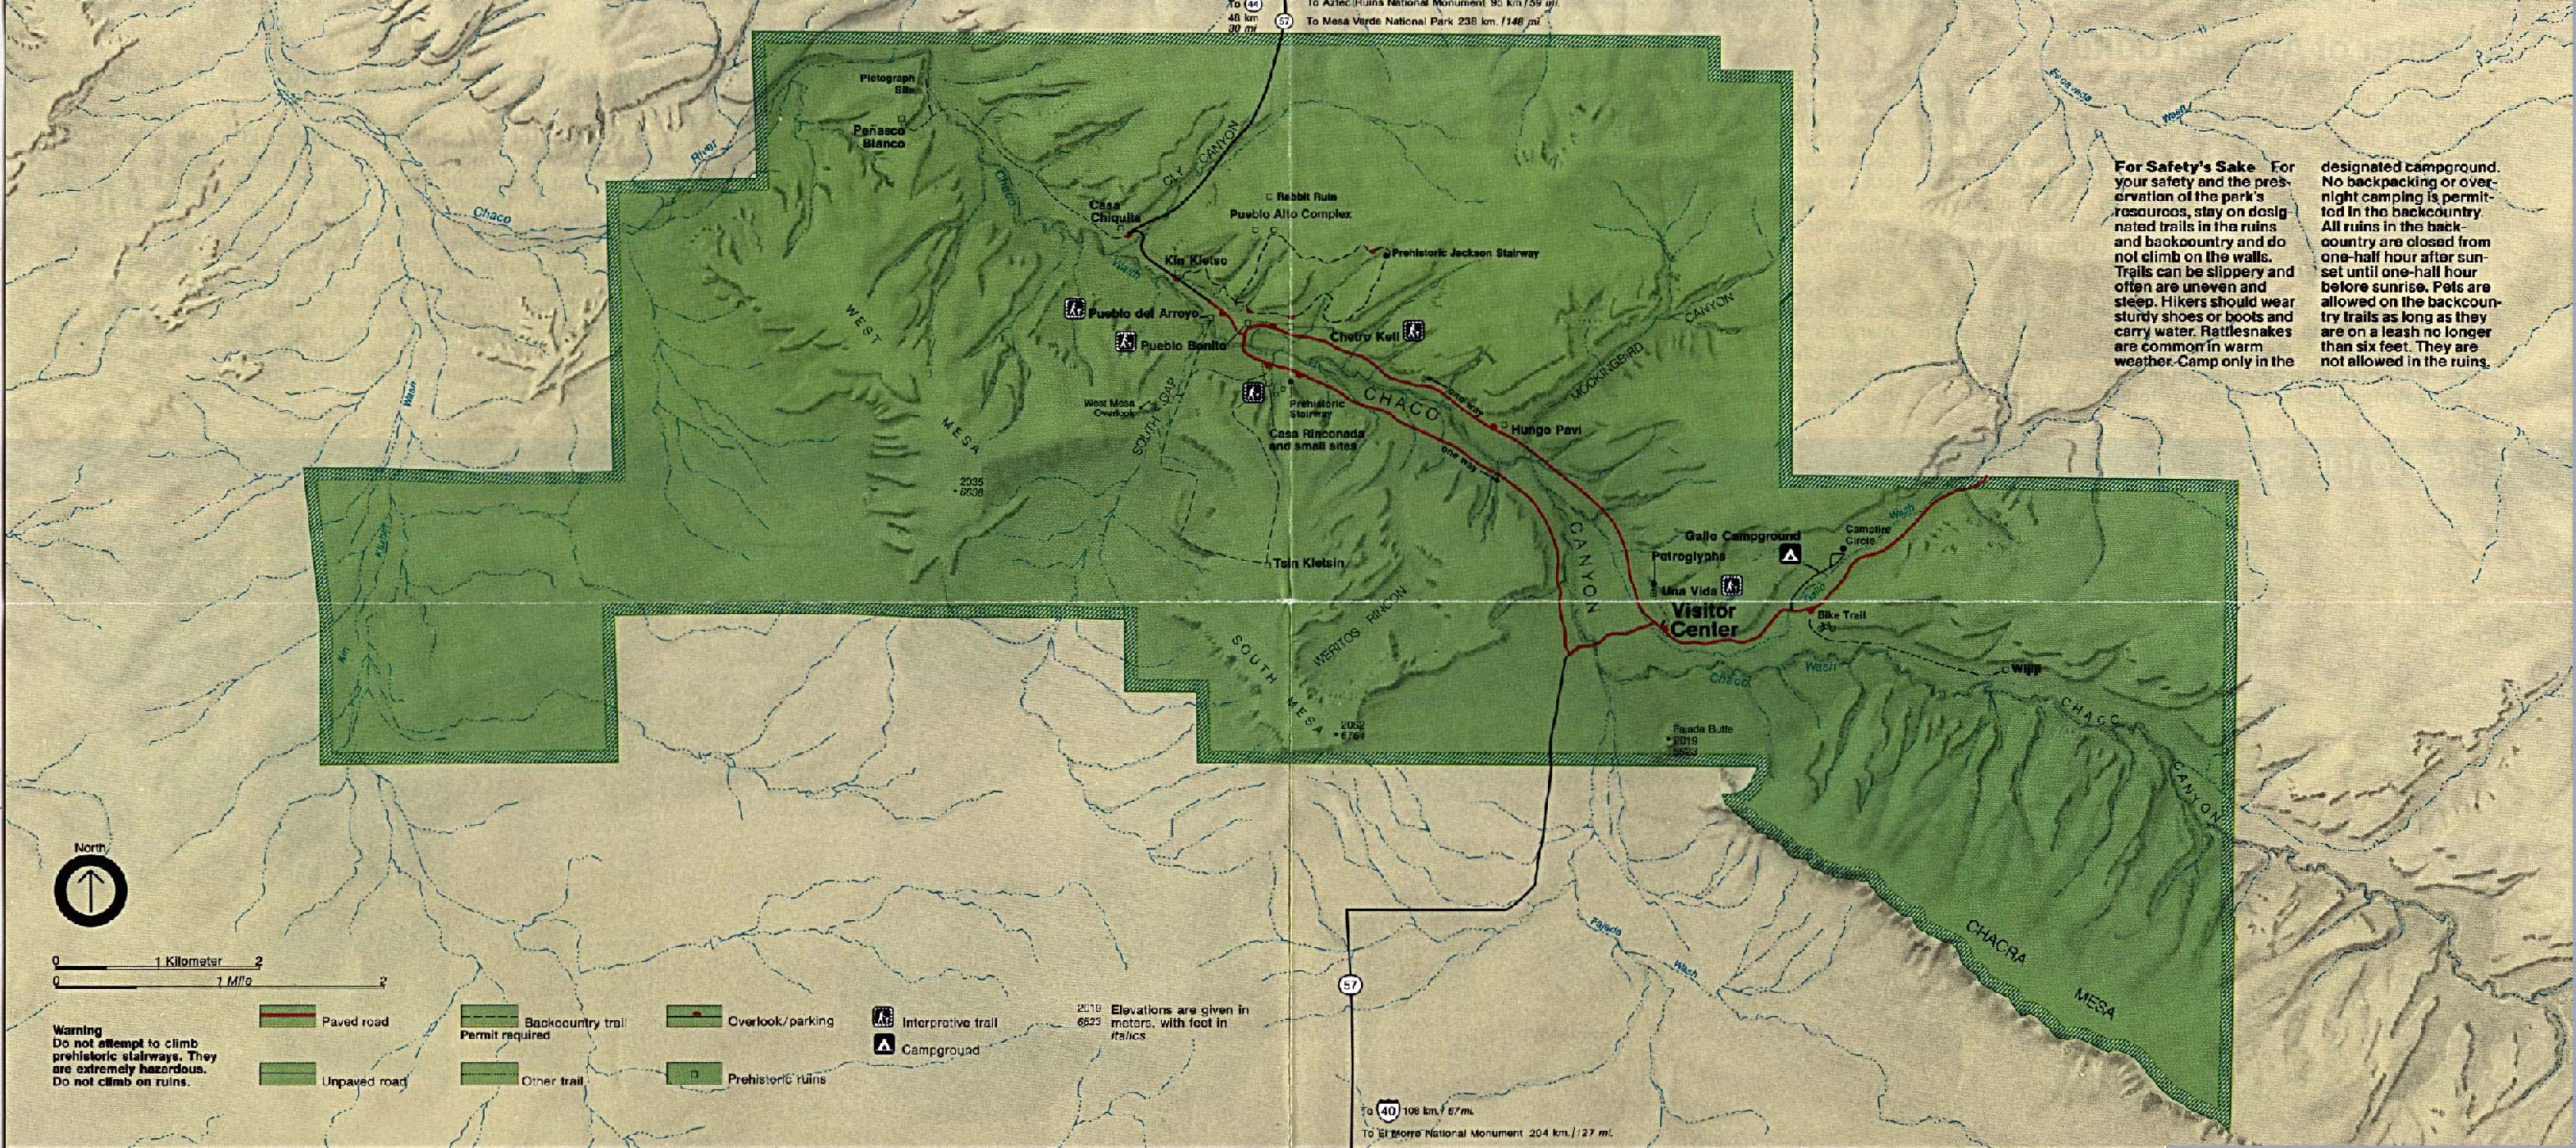 Maps Of United States National Parks And Monuments - Map os us national historical parks